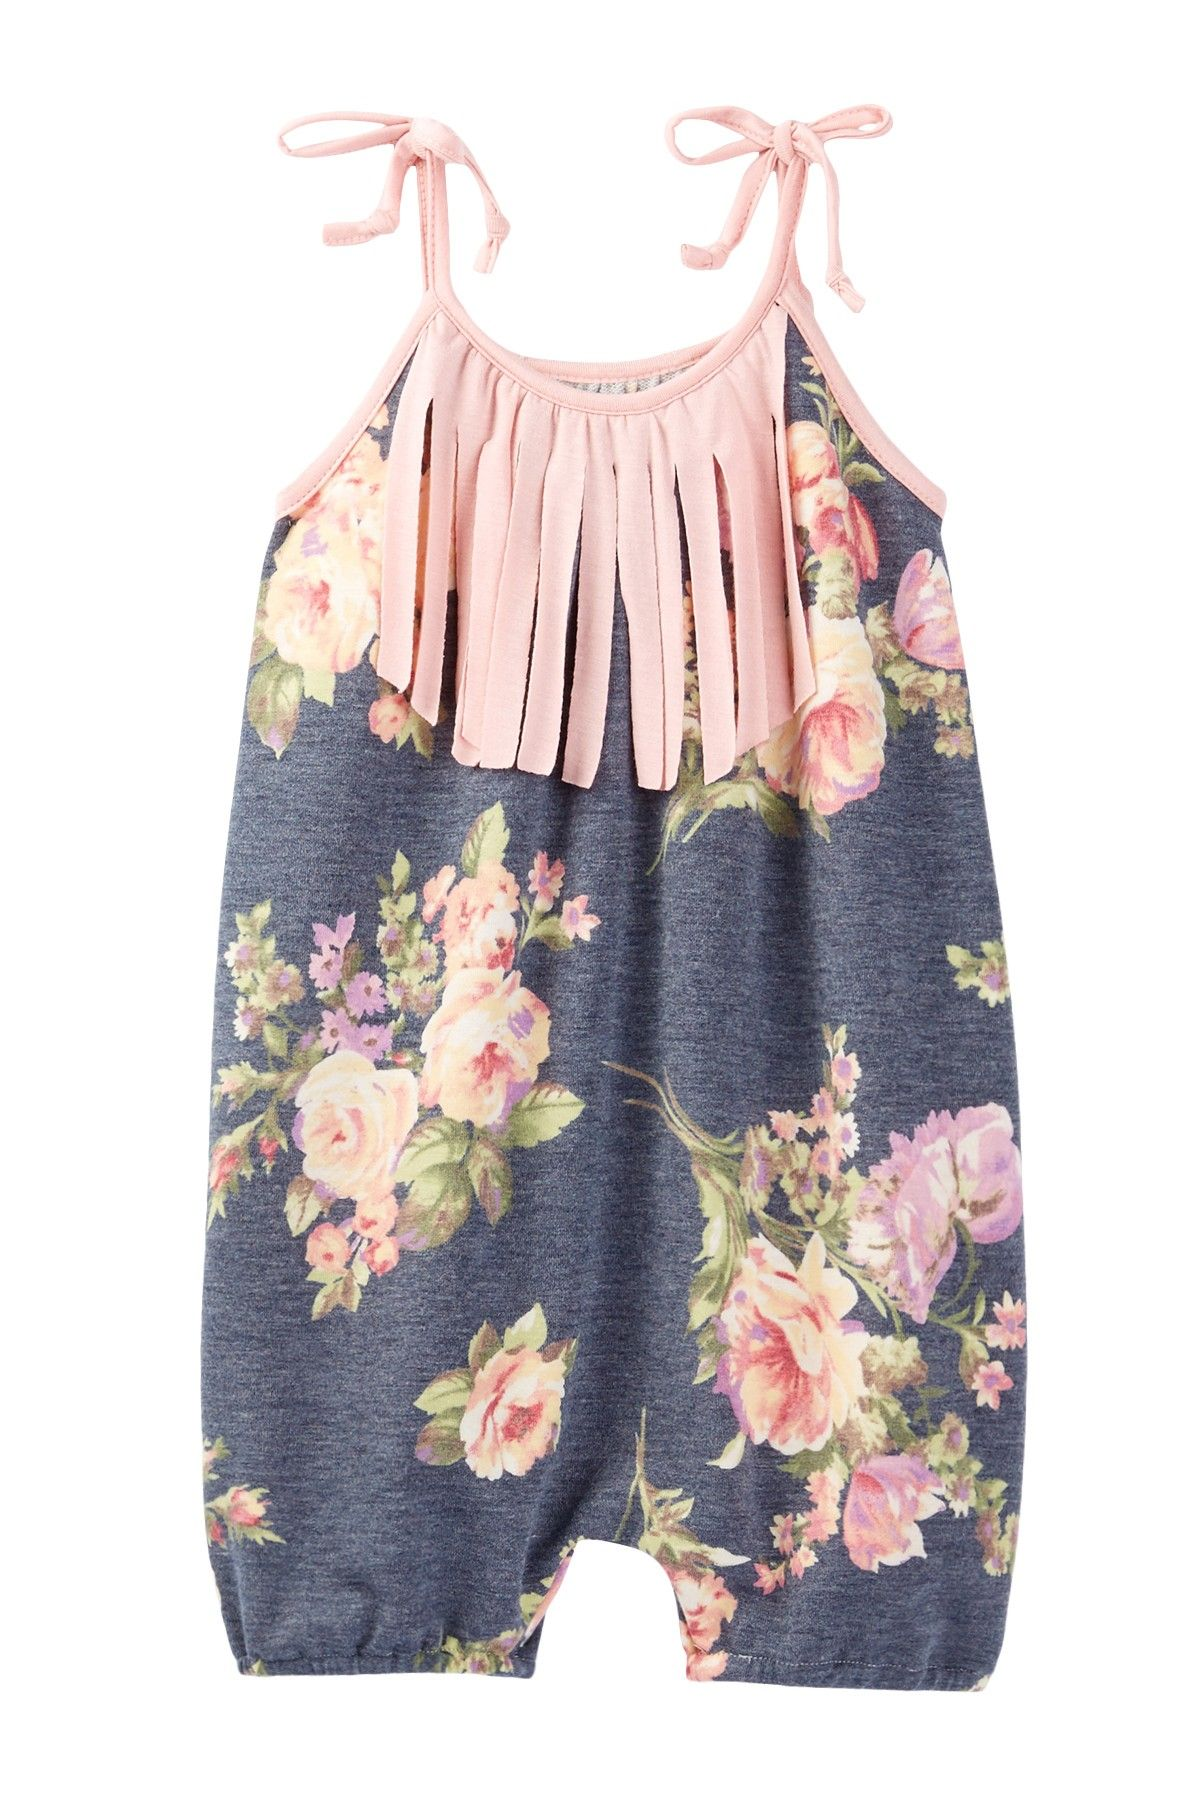 Charcoal Floral Bubble Romper Baby & Toddler Girls